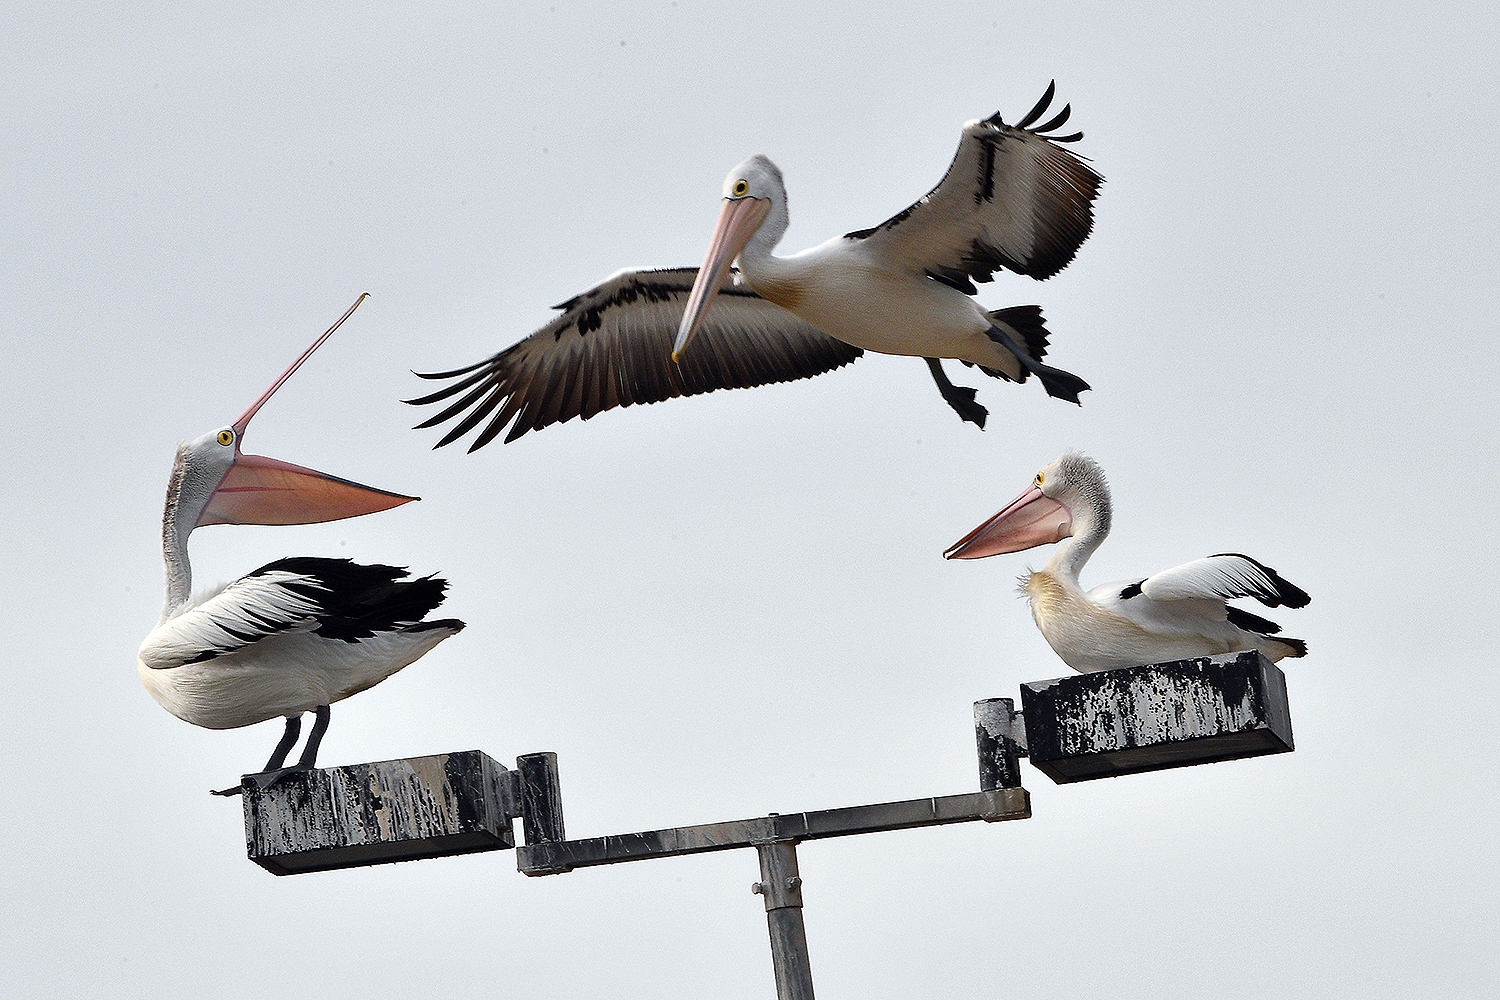 Pelicans hang out on a light pole on Botany Bay in Sydney, Australia, on Aug. 4. SAEED KHAN/AFP via Getty Images